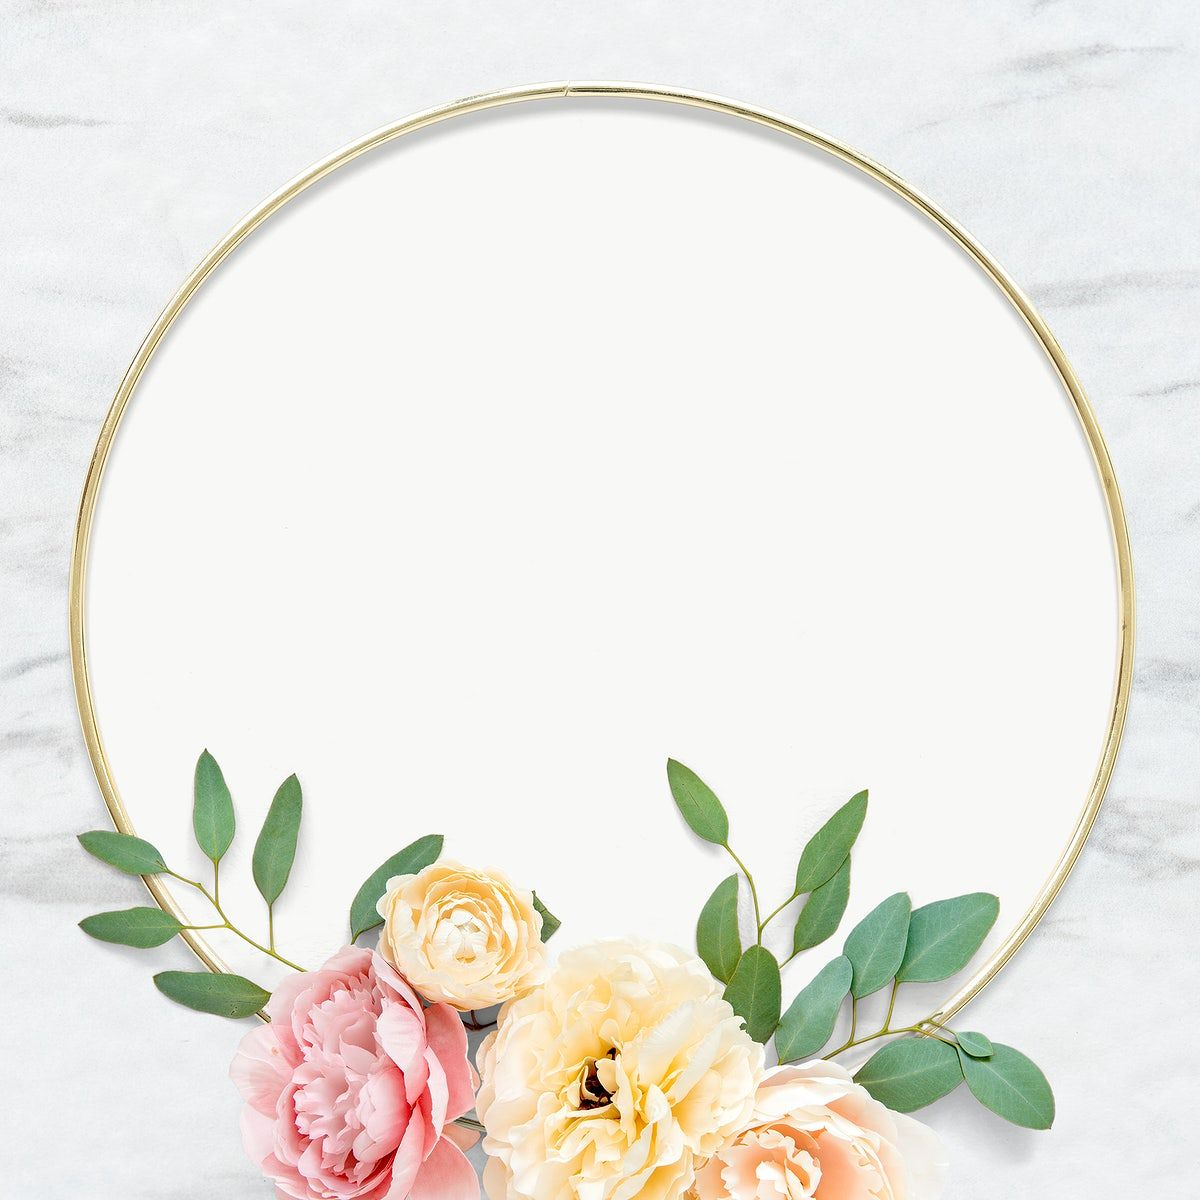 Pin By Rawpixel On Anniversaire Princesse In 2020 Frame Design Flower Frame Floral